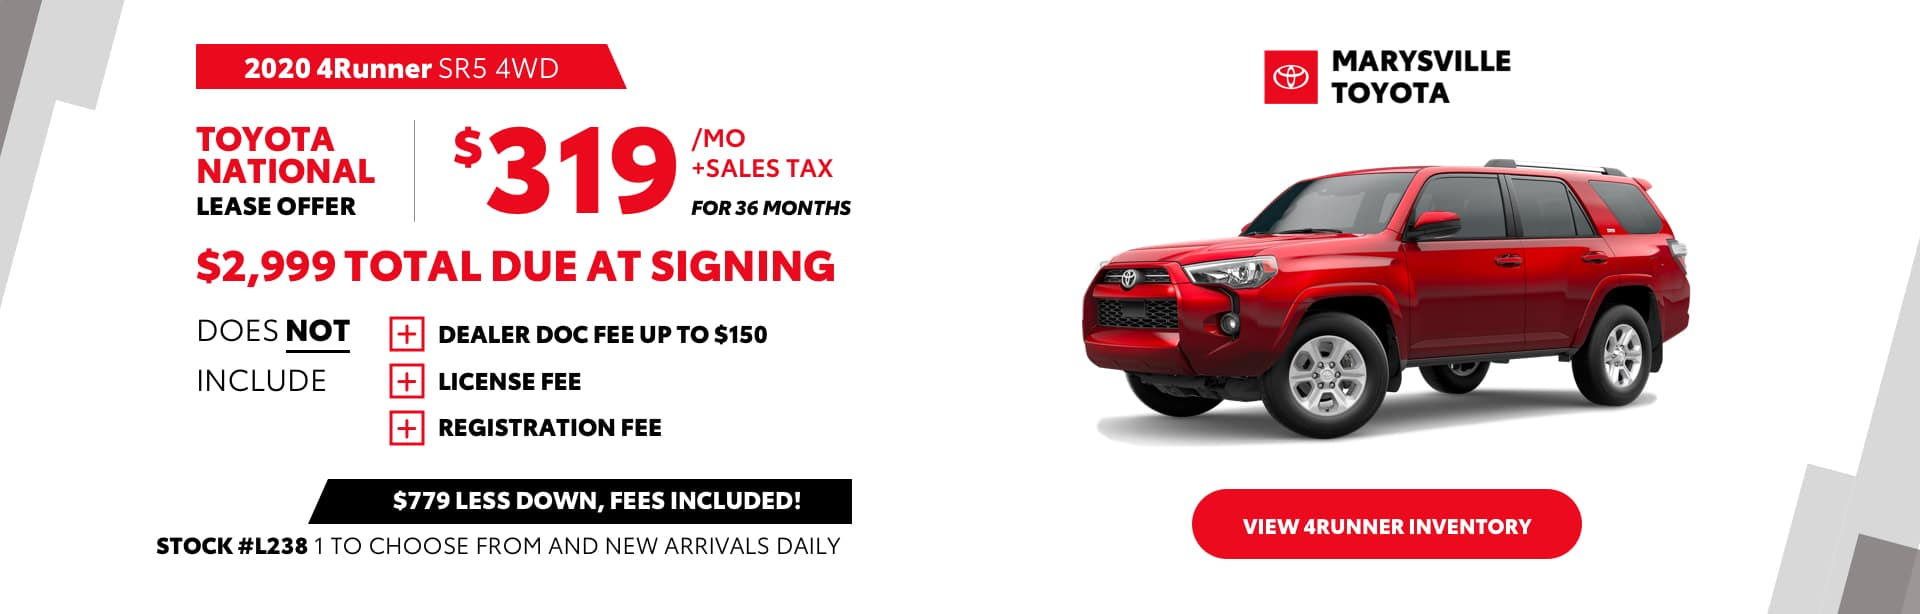 Toyota-National-Lease-Offer